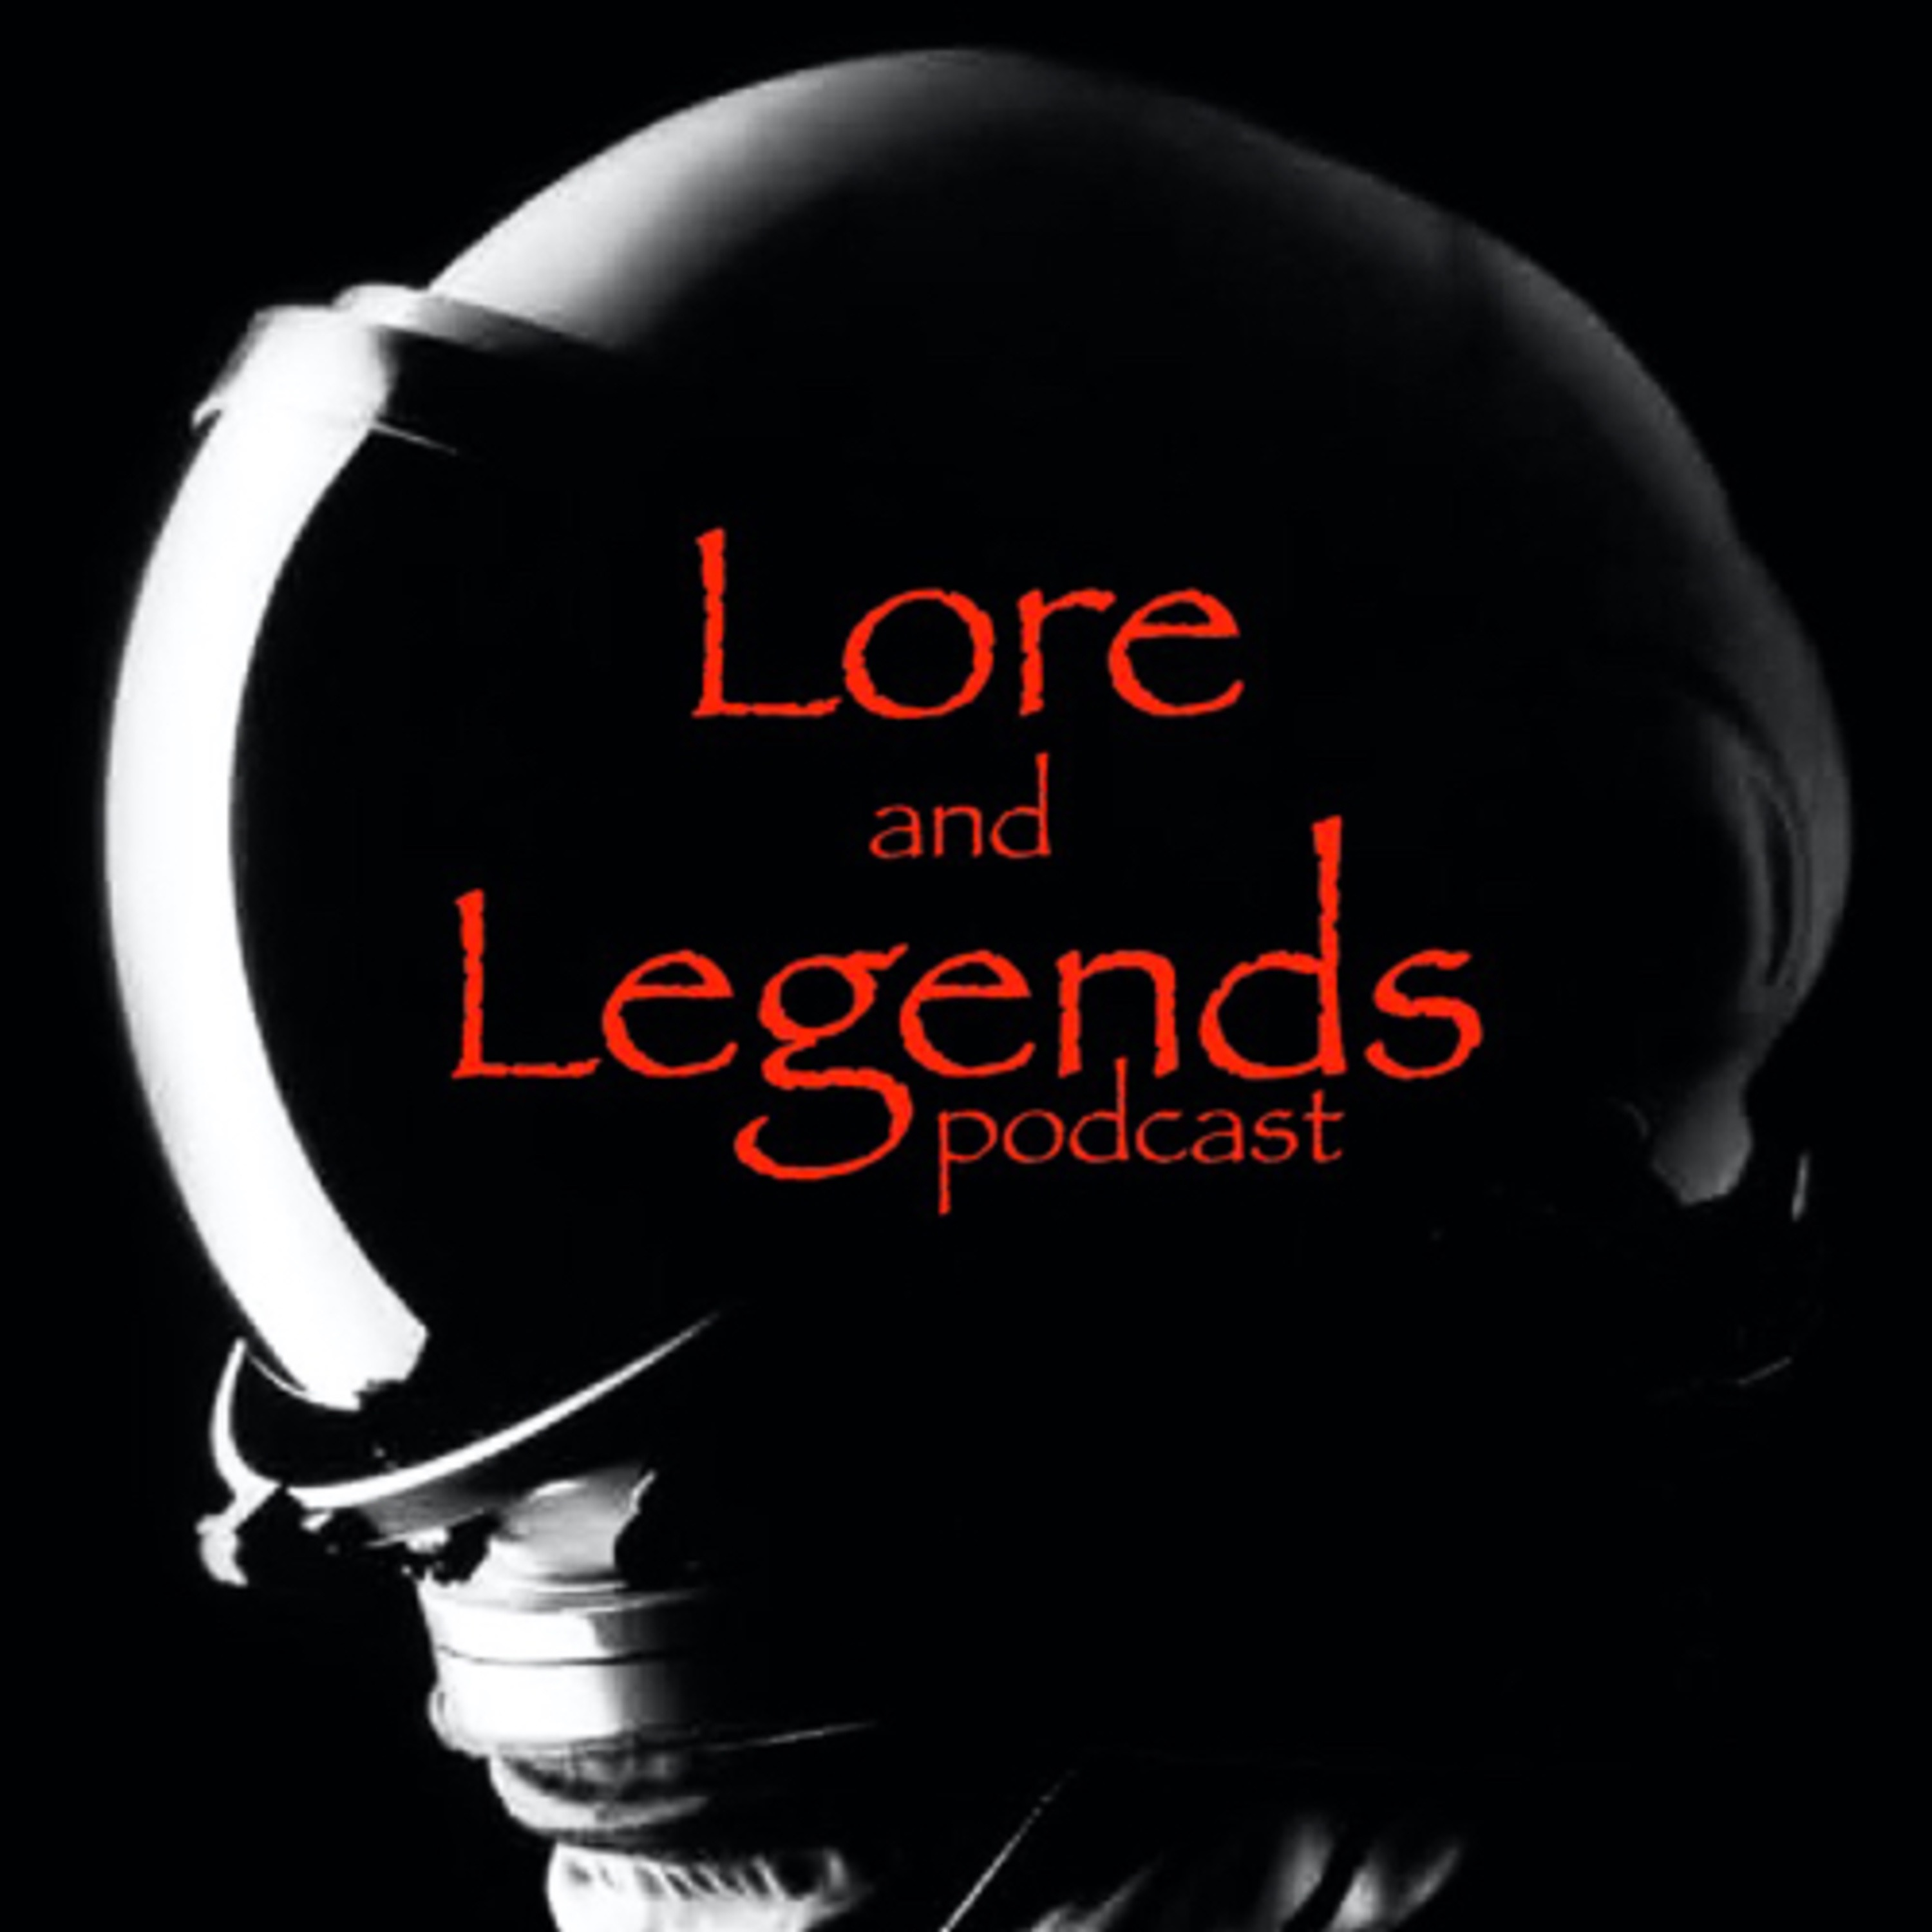 Lore and Legends